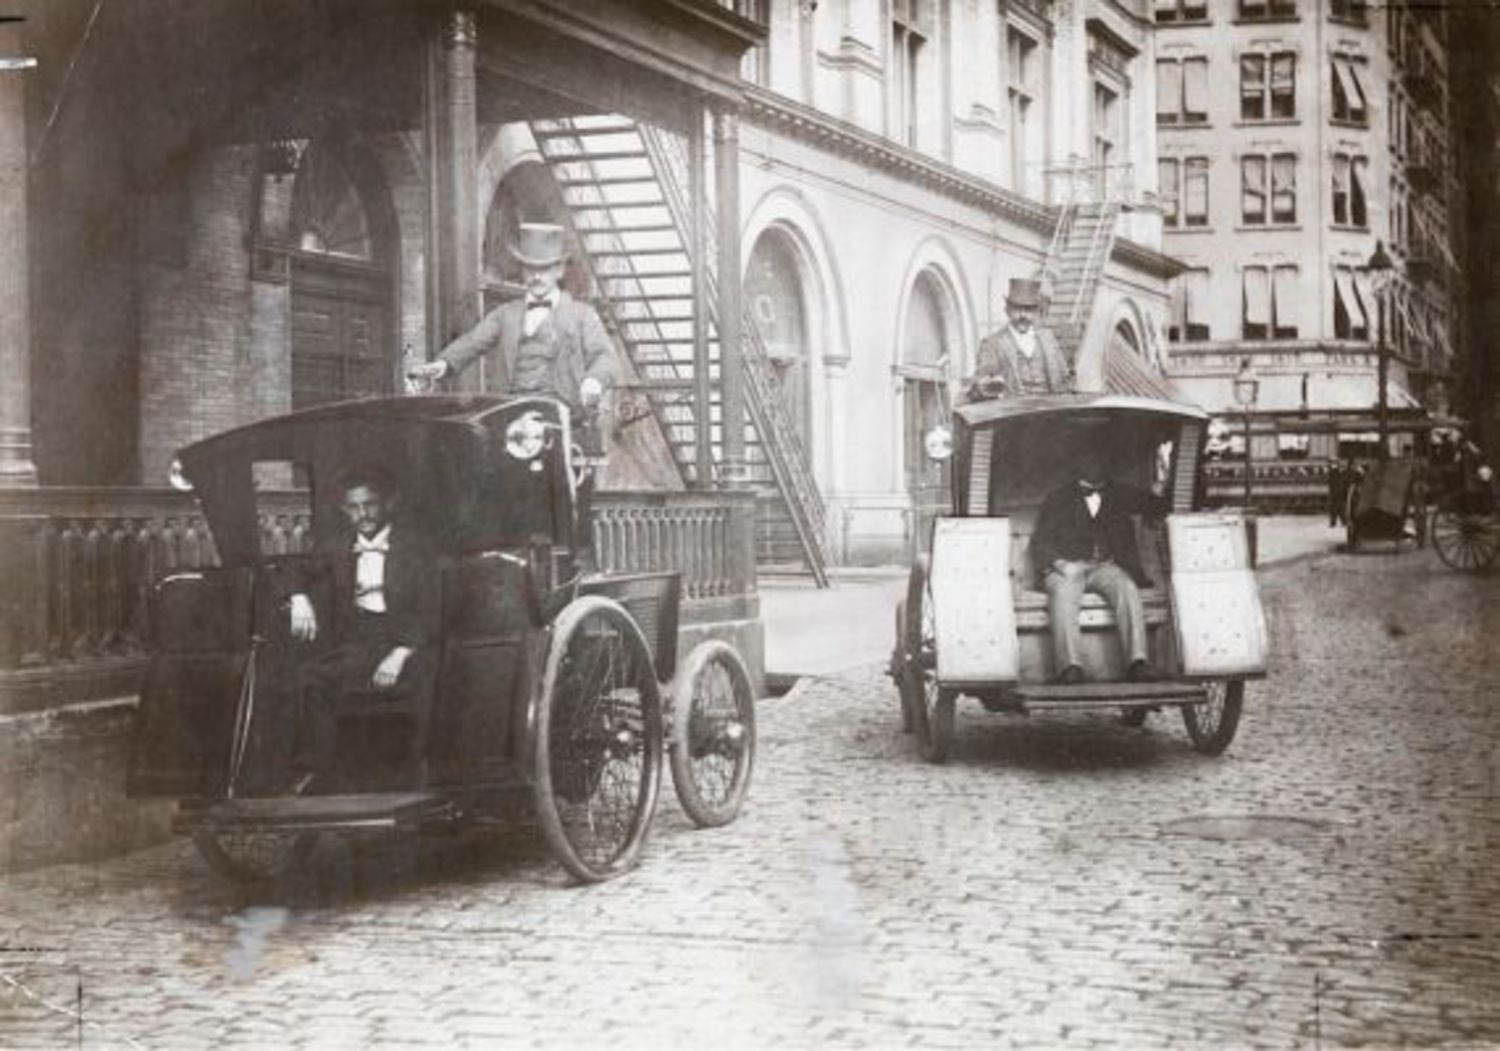 Electric cabs of the late 19th century: A failed experiment